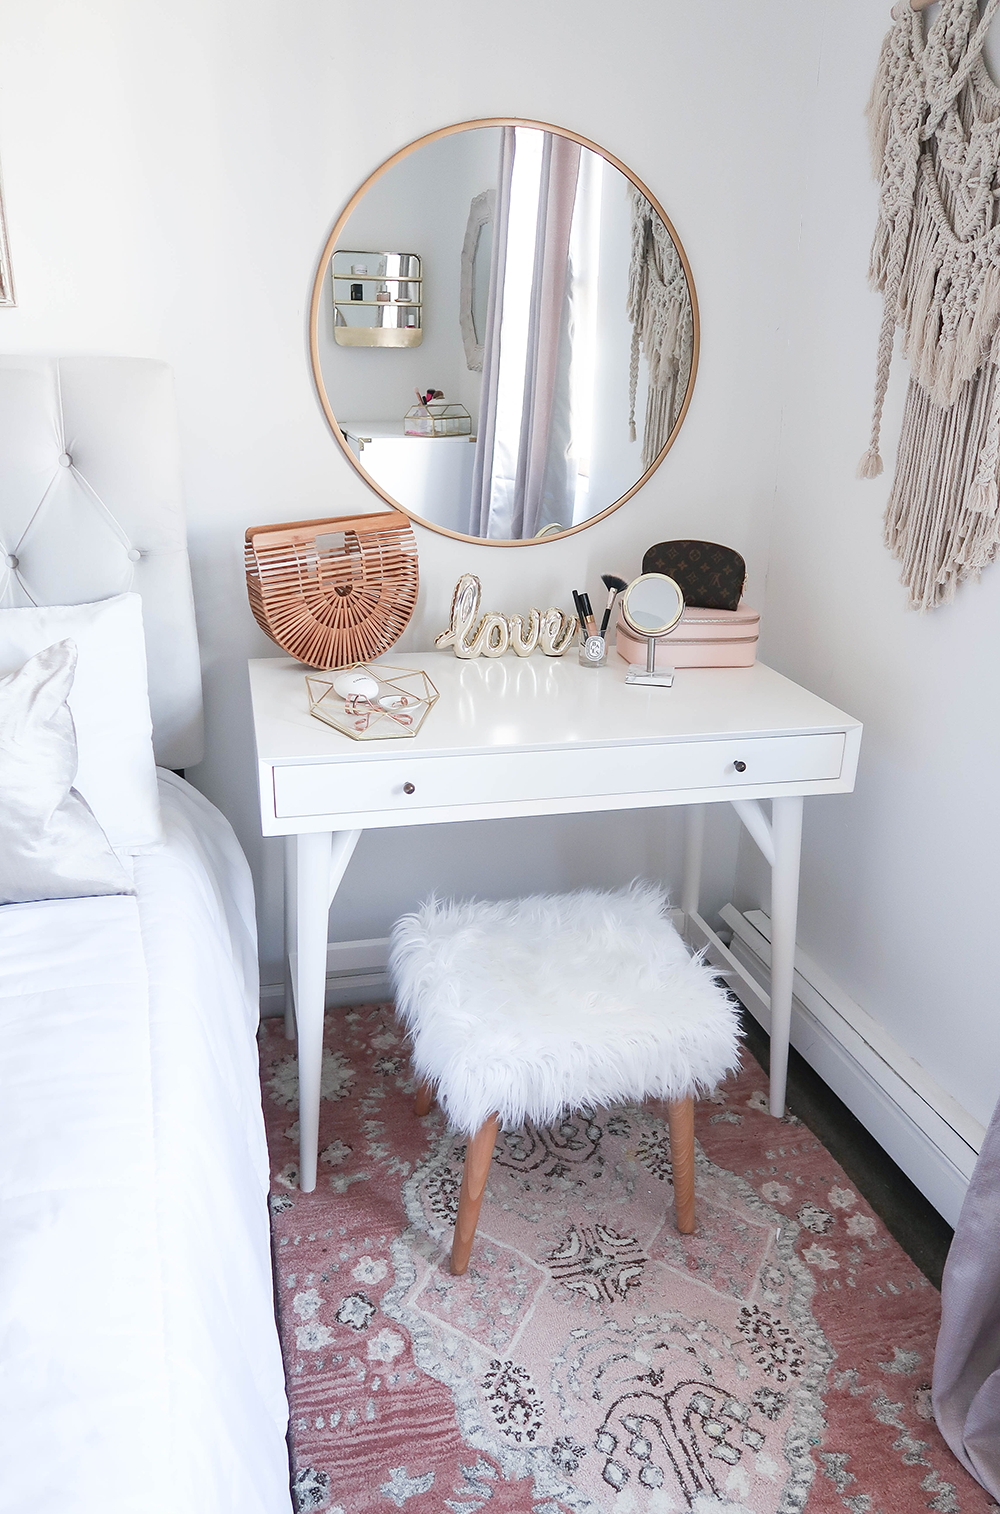 Styling A Vanity In A Small Space Small vanity Bedroom small and